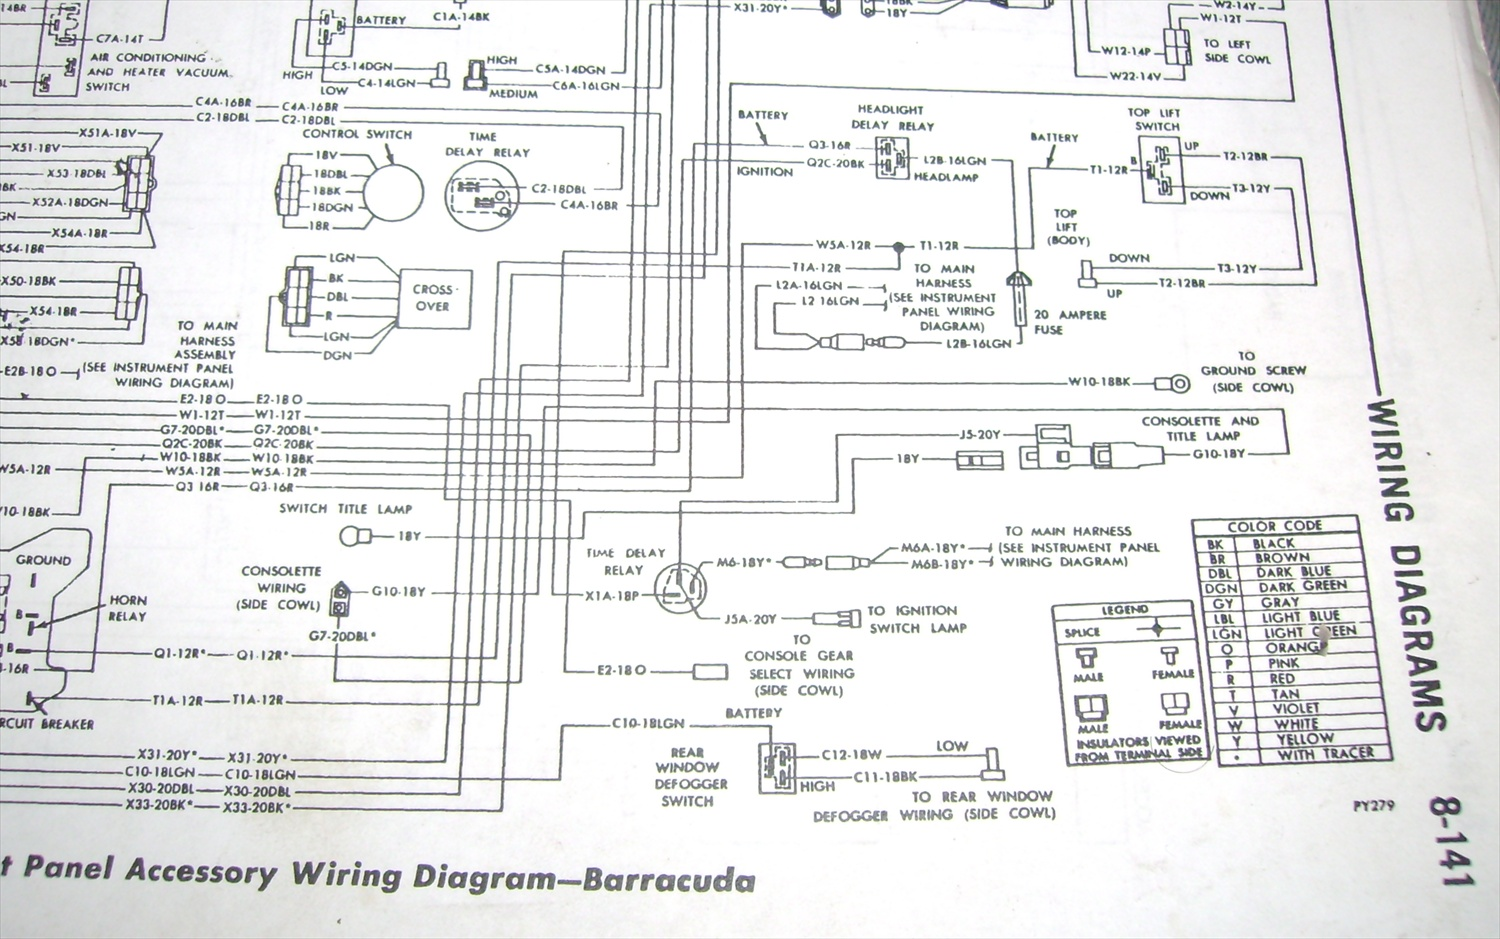 4891209 maplightdiagram001 need photo 70 e body backside of dash please moparts 3-Way Switch Light Wiring Diagram at aneh.co